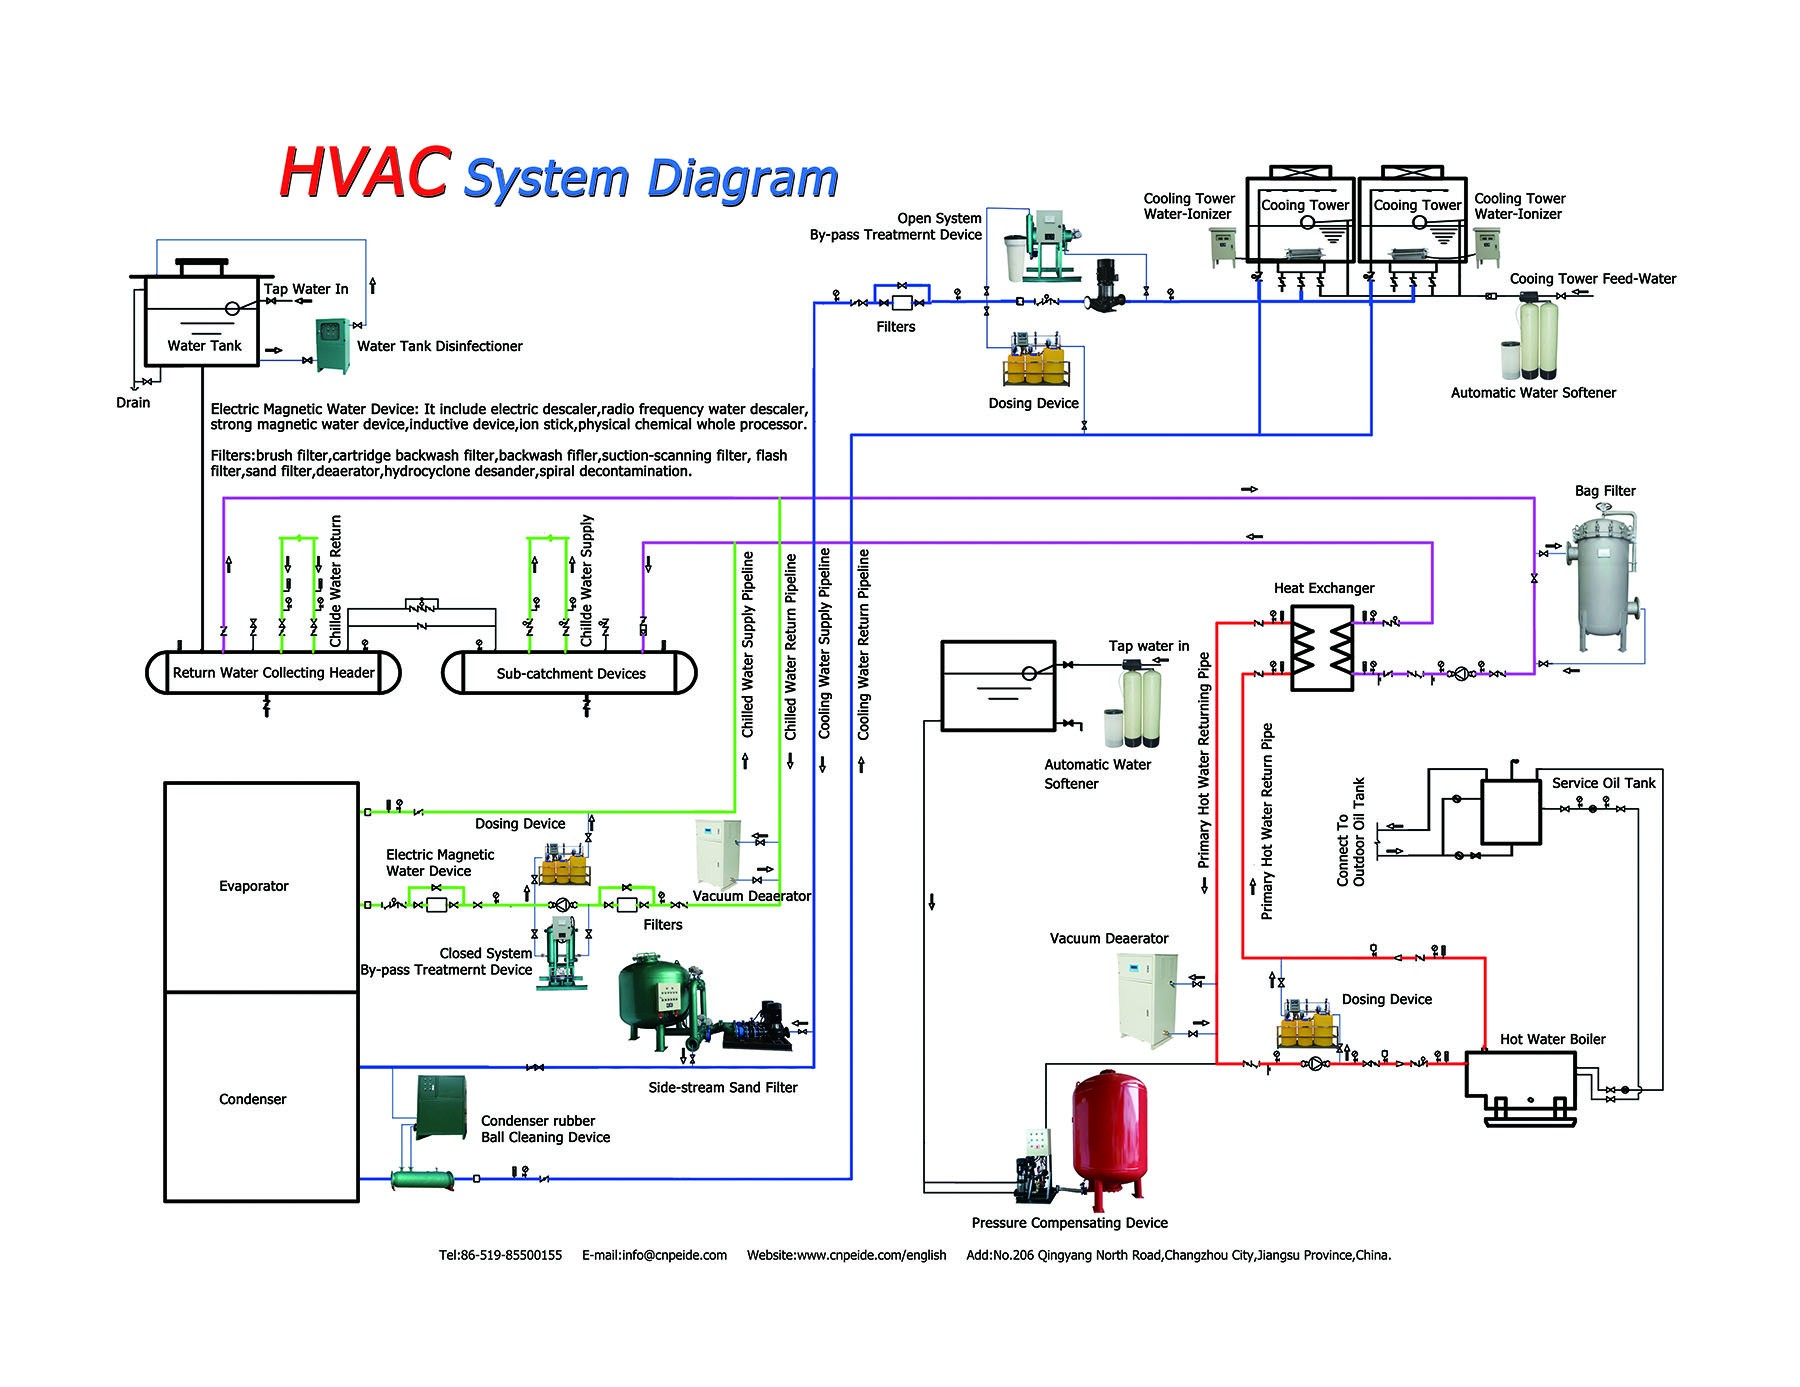 Auto Air Conditioning System Diagram Hvac Systems Diagrams Wiring Diagram Of Auto Air Conditioning System Diagram